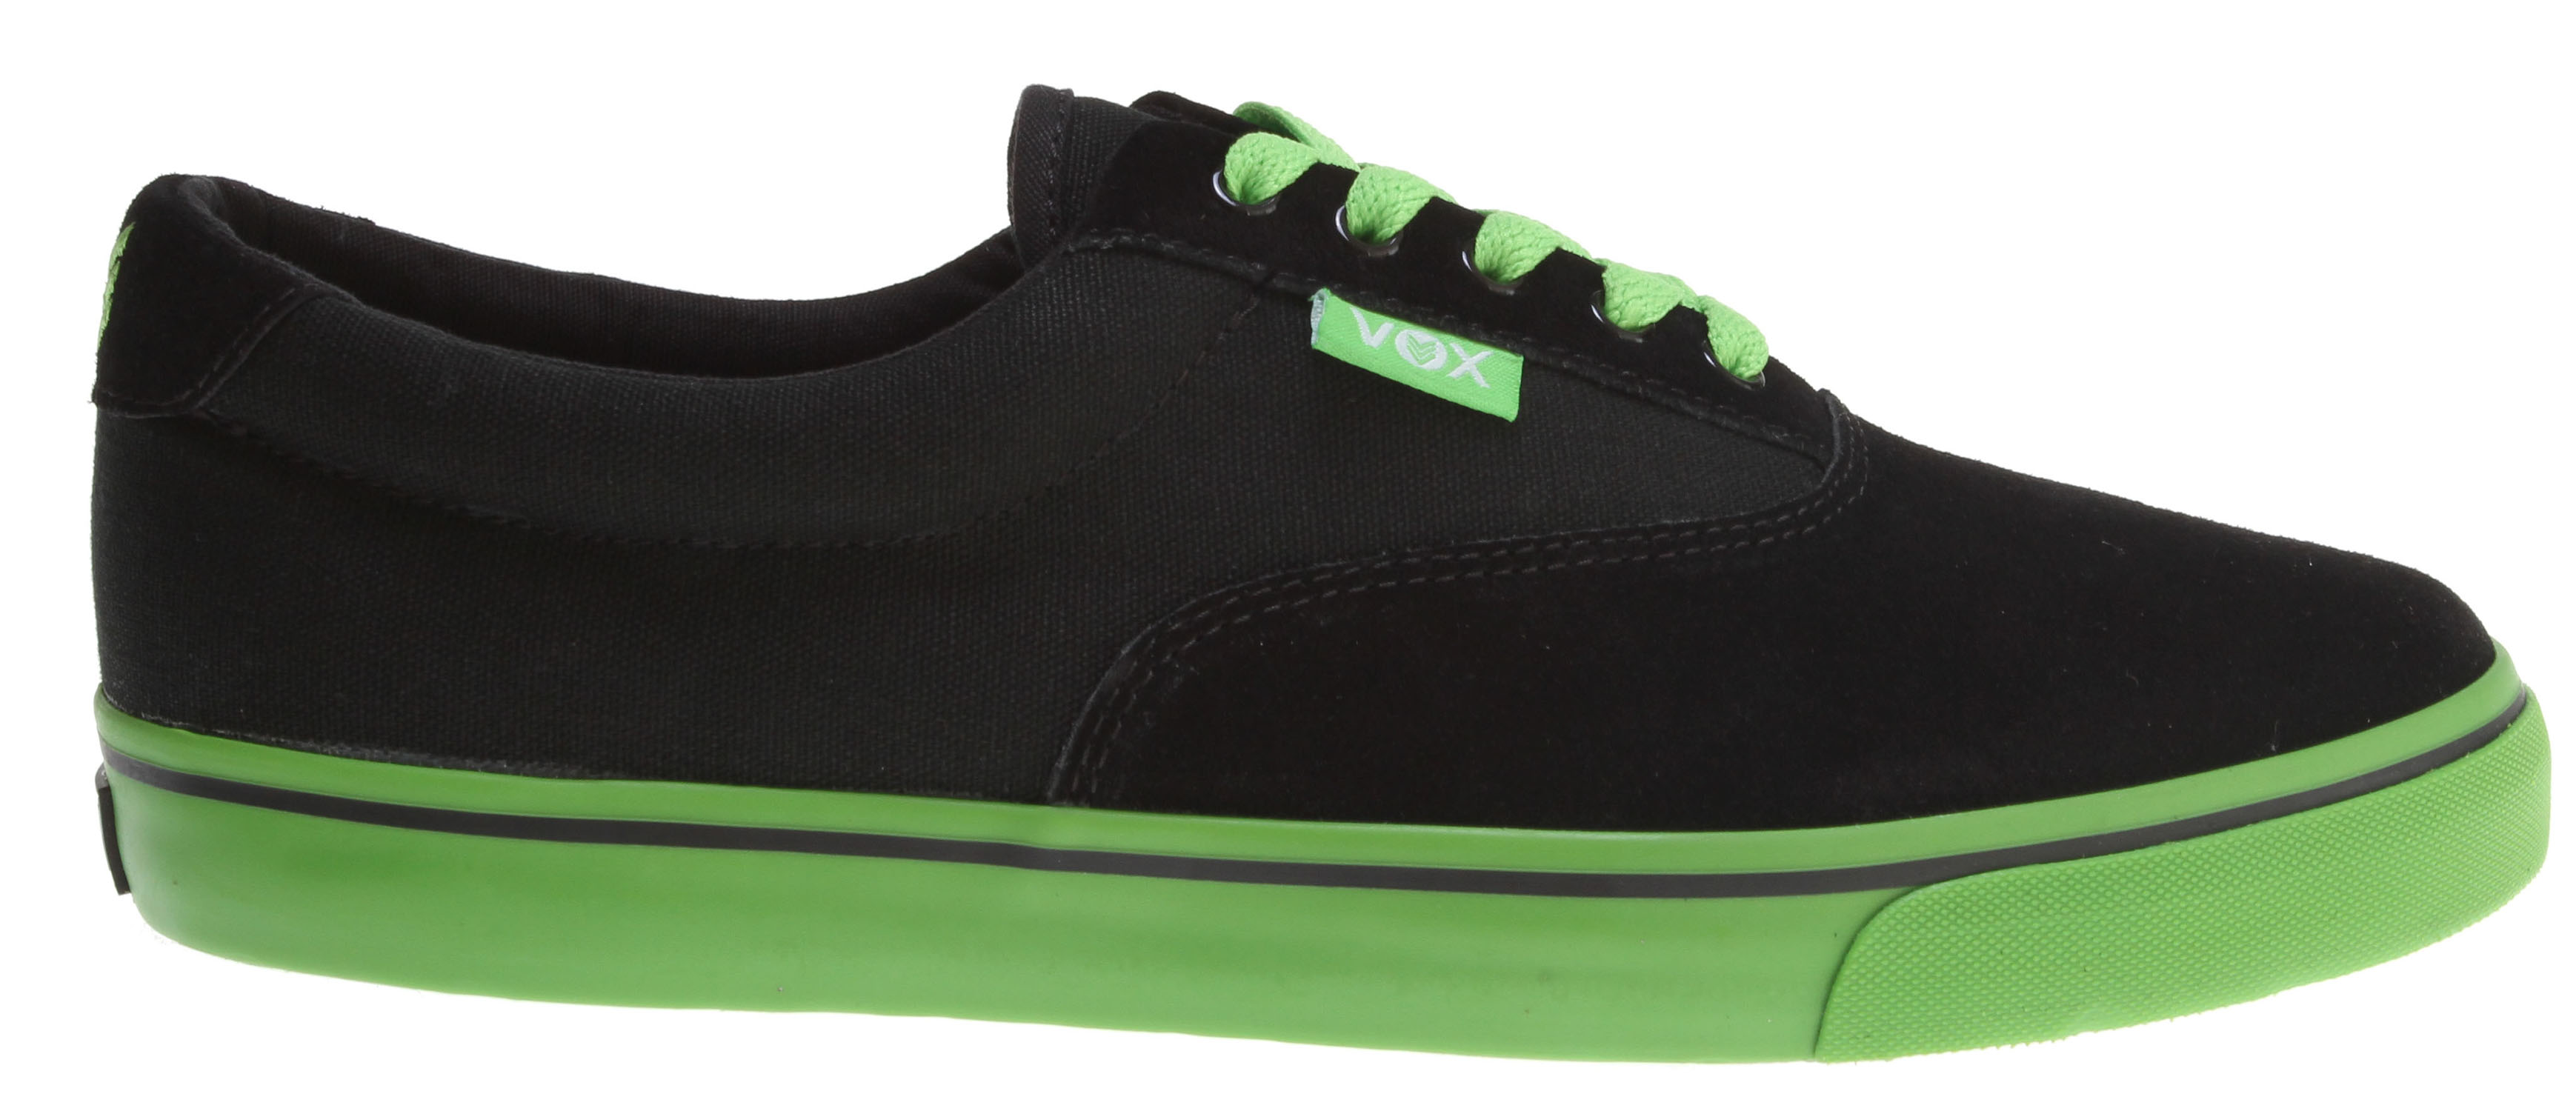 Skateboard Key Features of the Vox Savey Skate Shoes: Vulcanized Construction Suede And Canvas Upper Vox I.R.S. Gel System Gum Rubber Outsole - $28.95